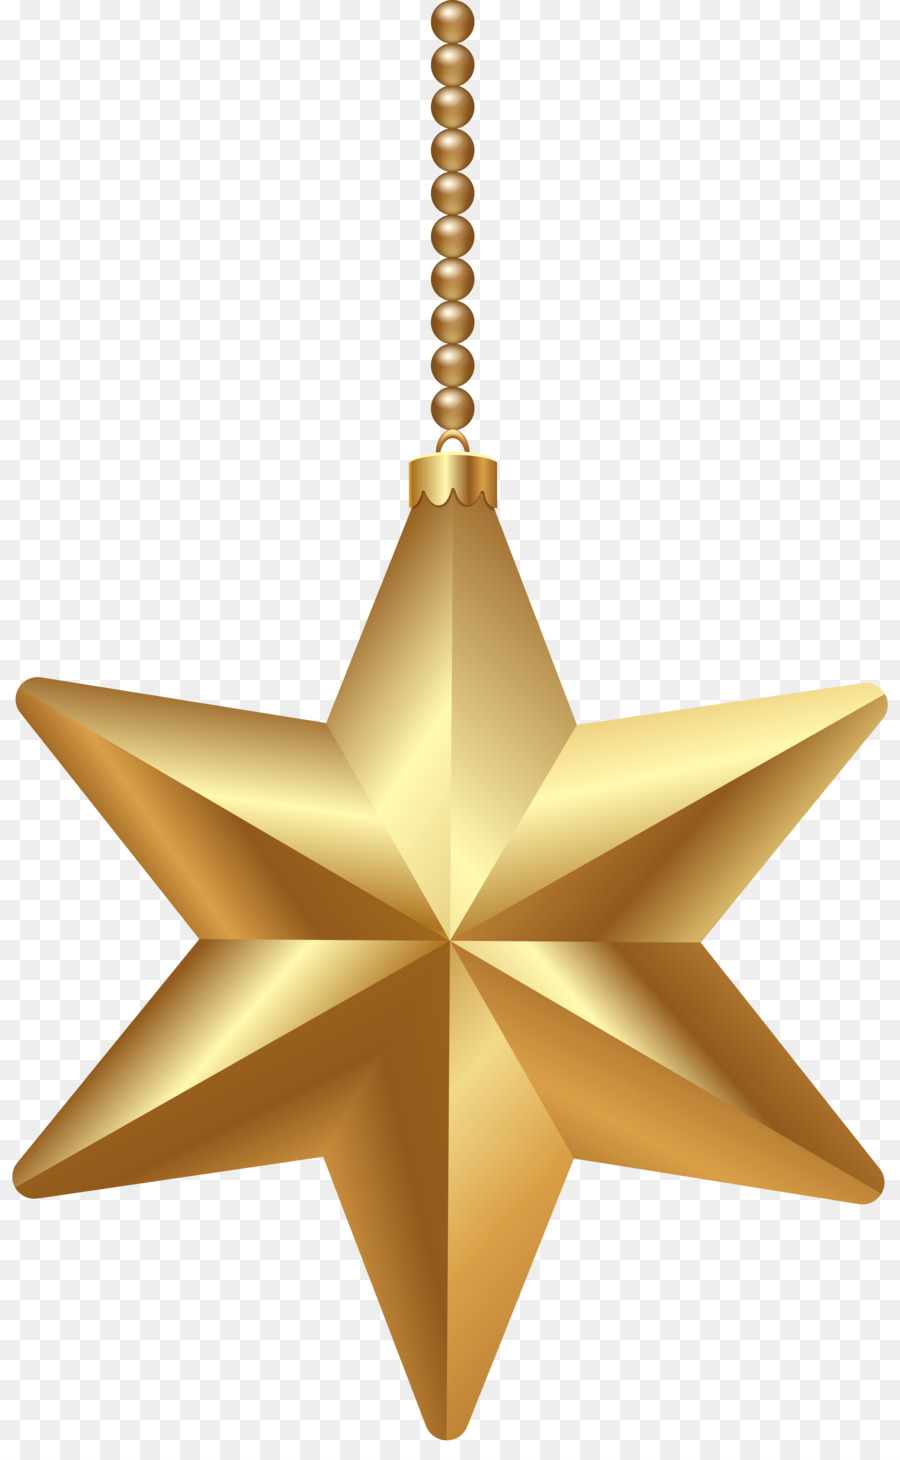 Christmas Chain Clipart.Gold Christmas Tree Clipart Star Gold Transparent Clip Art